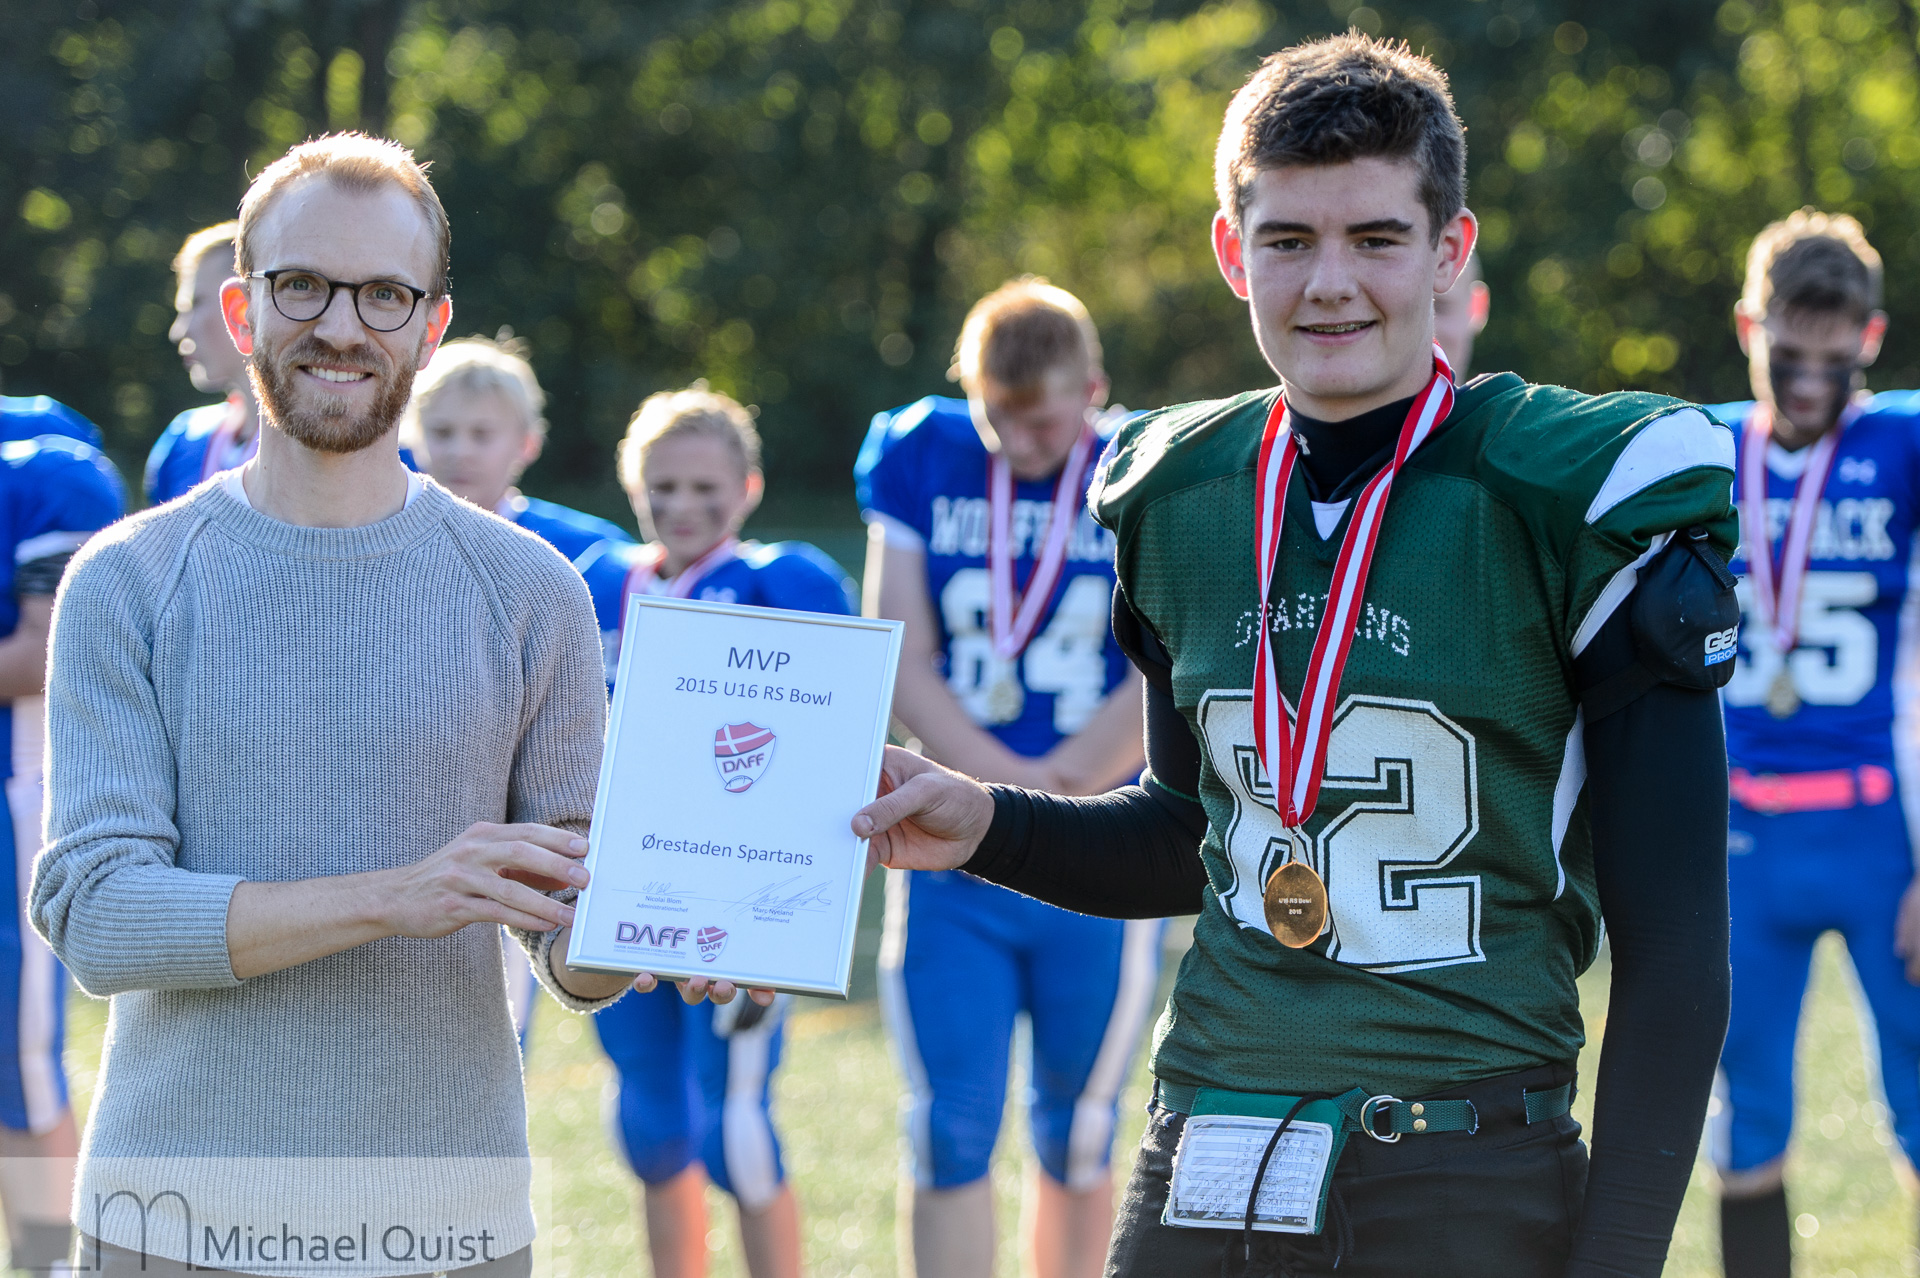 U16-RS-Bowl-2015-Ørestaden-Spartans-vs-Slagelse-Wolfpack-75